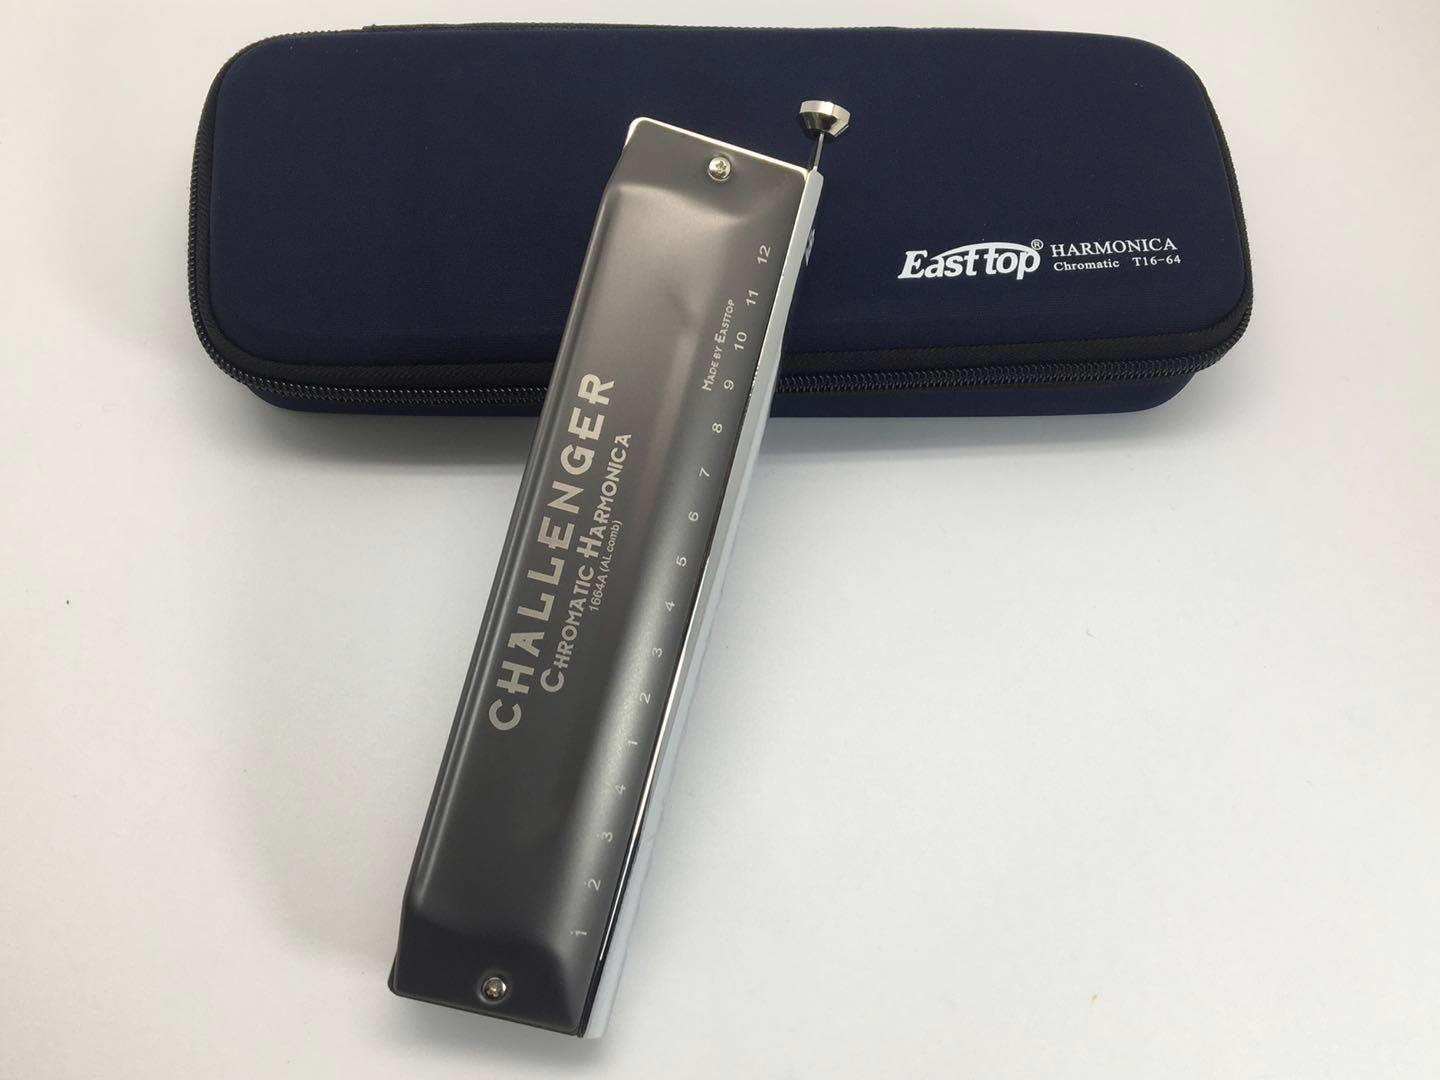 Easttop Challenger Chromatic Harmonica Aluminium 16 hole - model T-16-64-AL with case